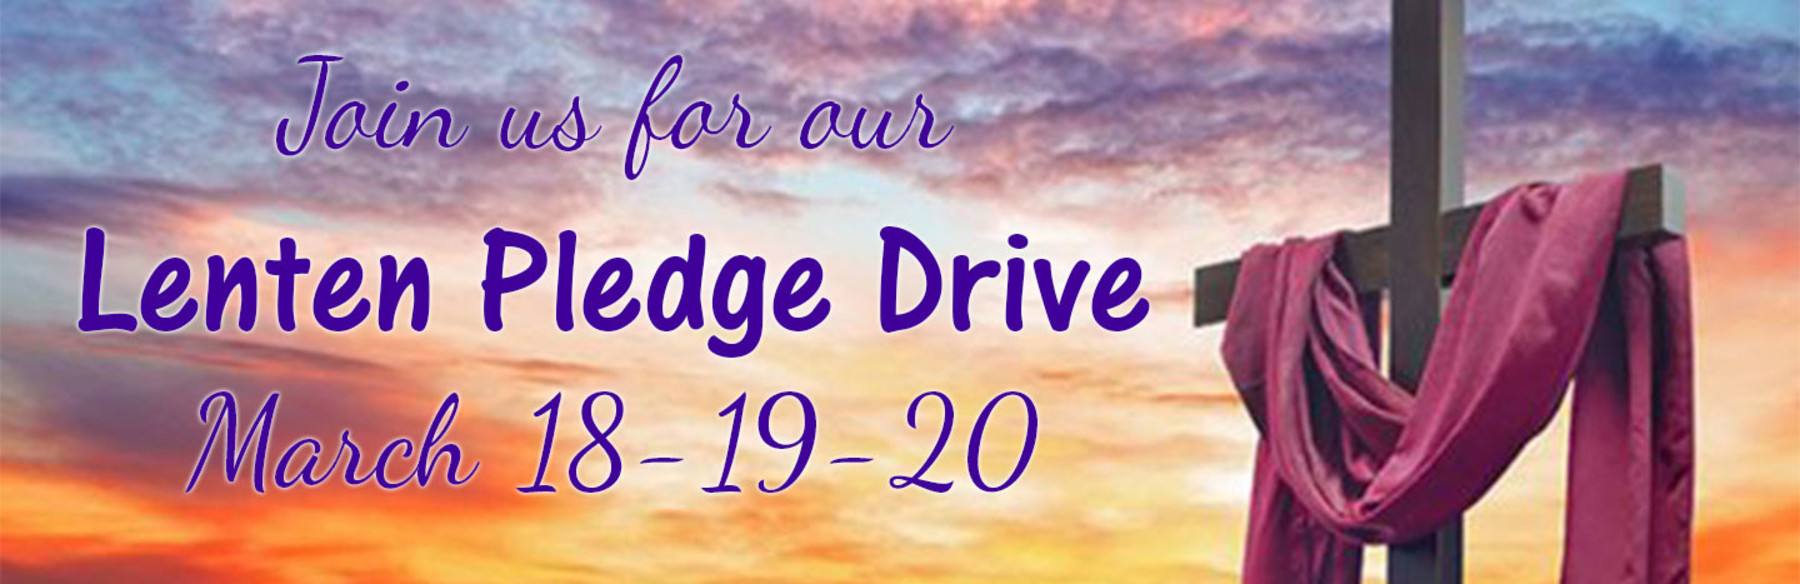 Lenten Pledge Drive 2020 Newest